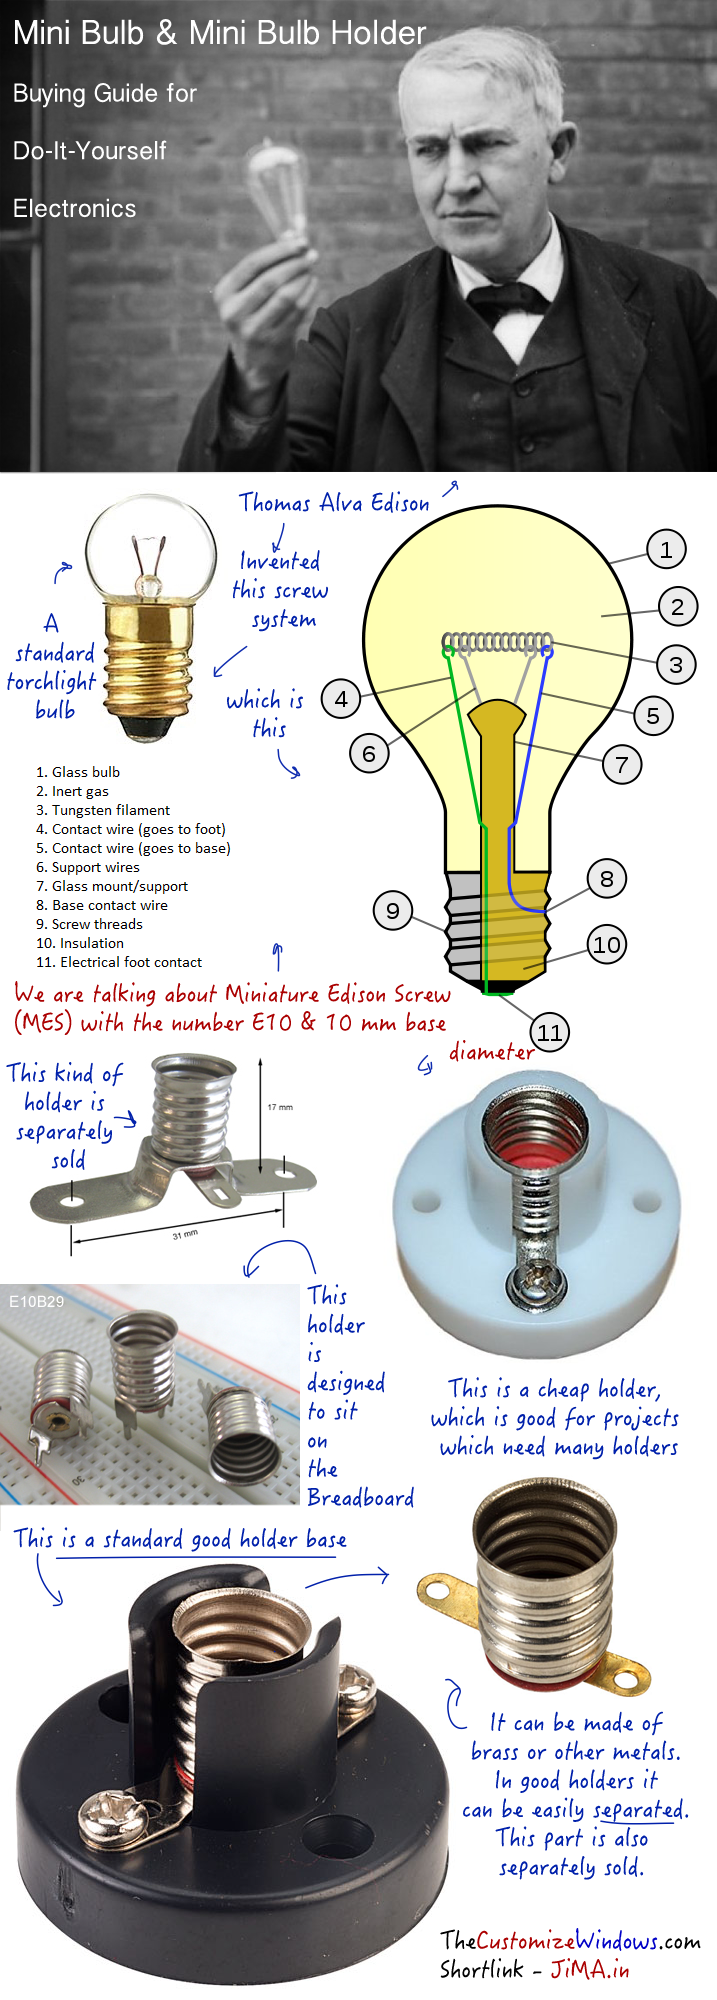 Mini Bulb & Mini Bulb Holder Buying Guide for DIY Electronics